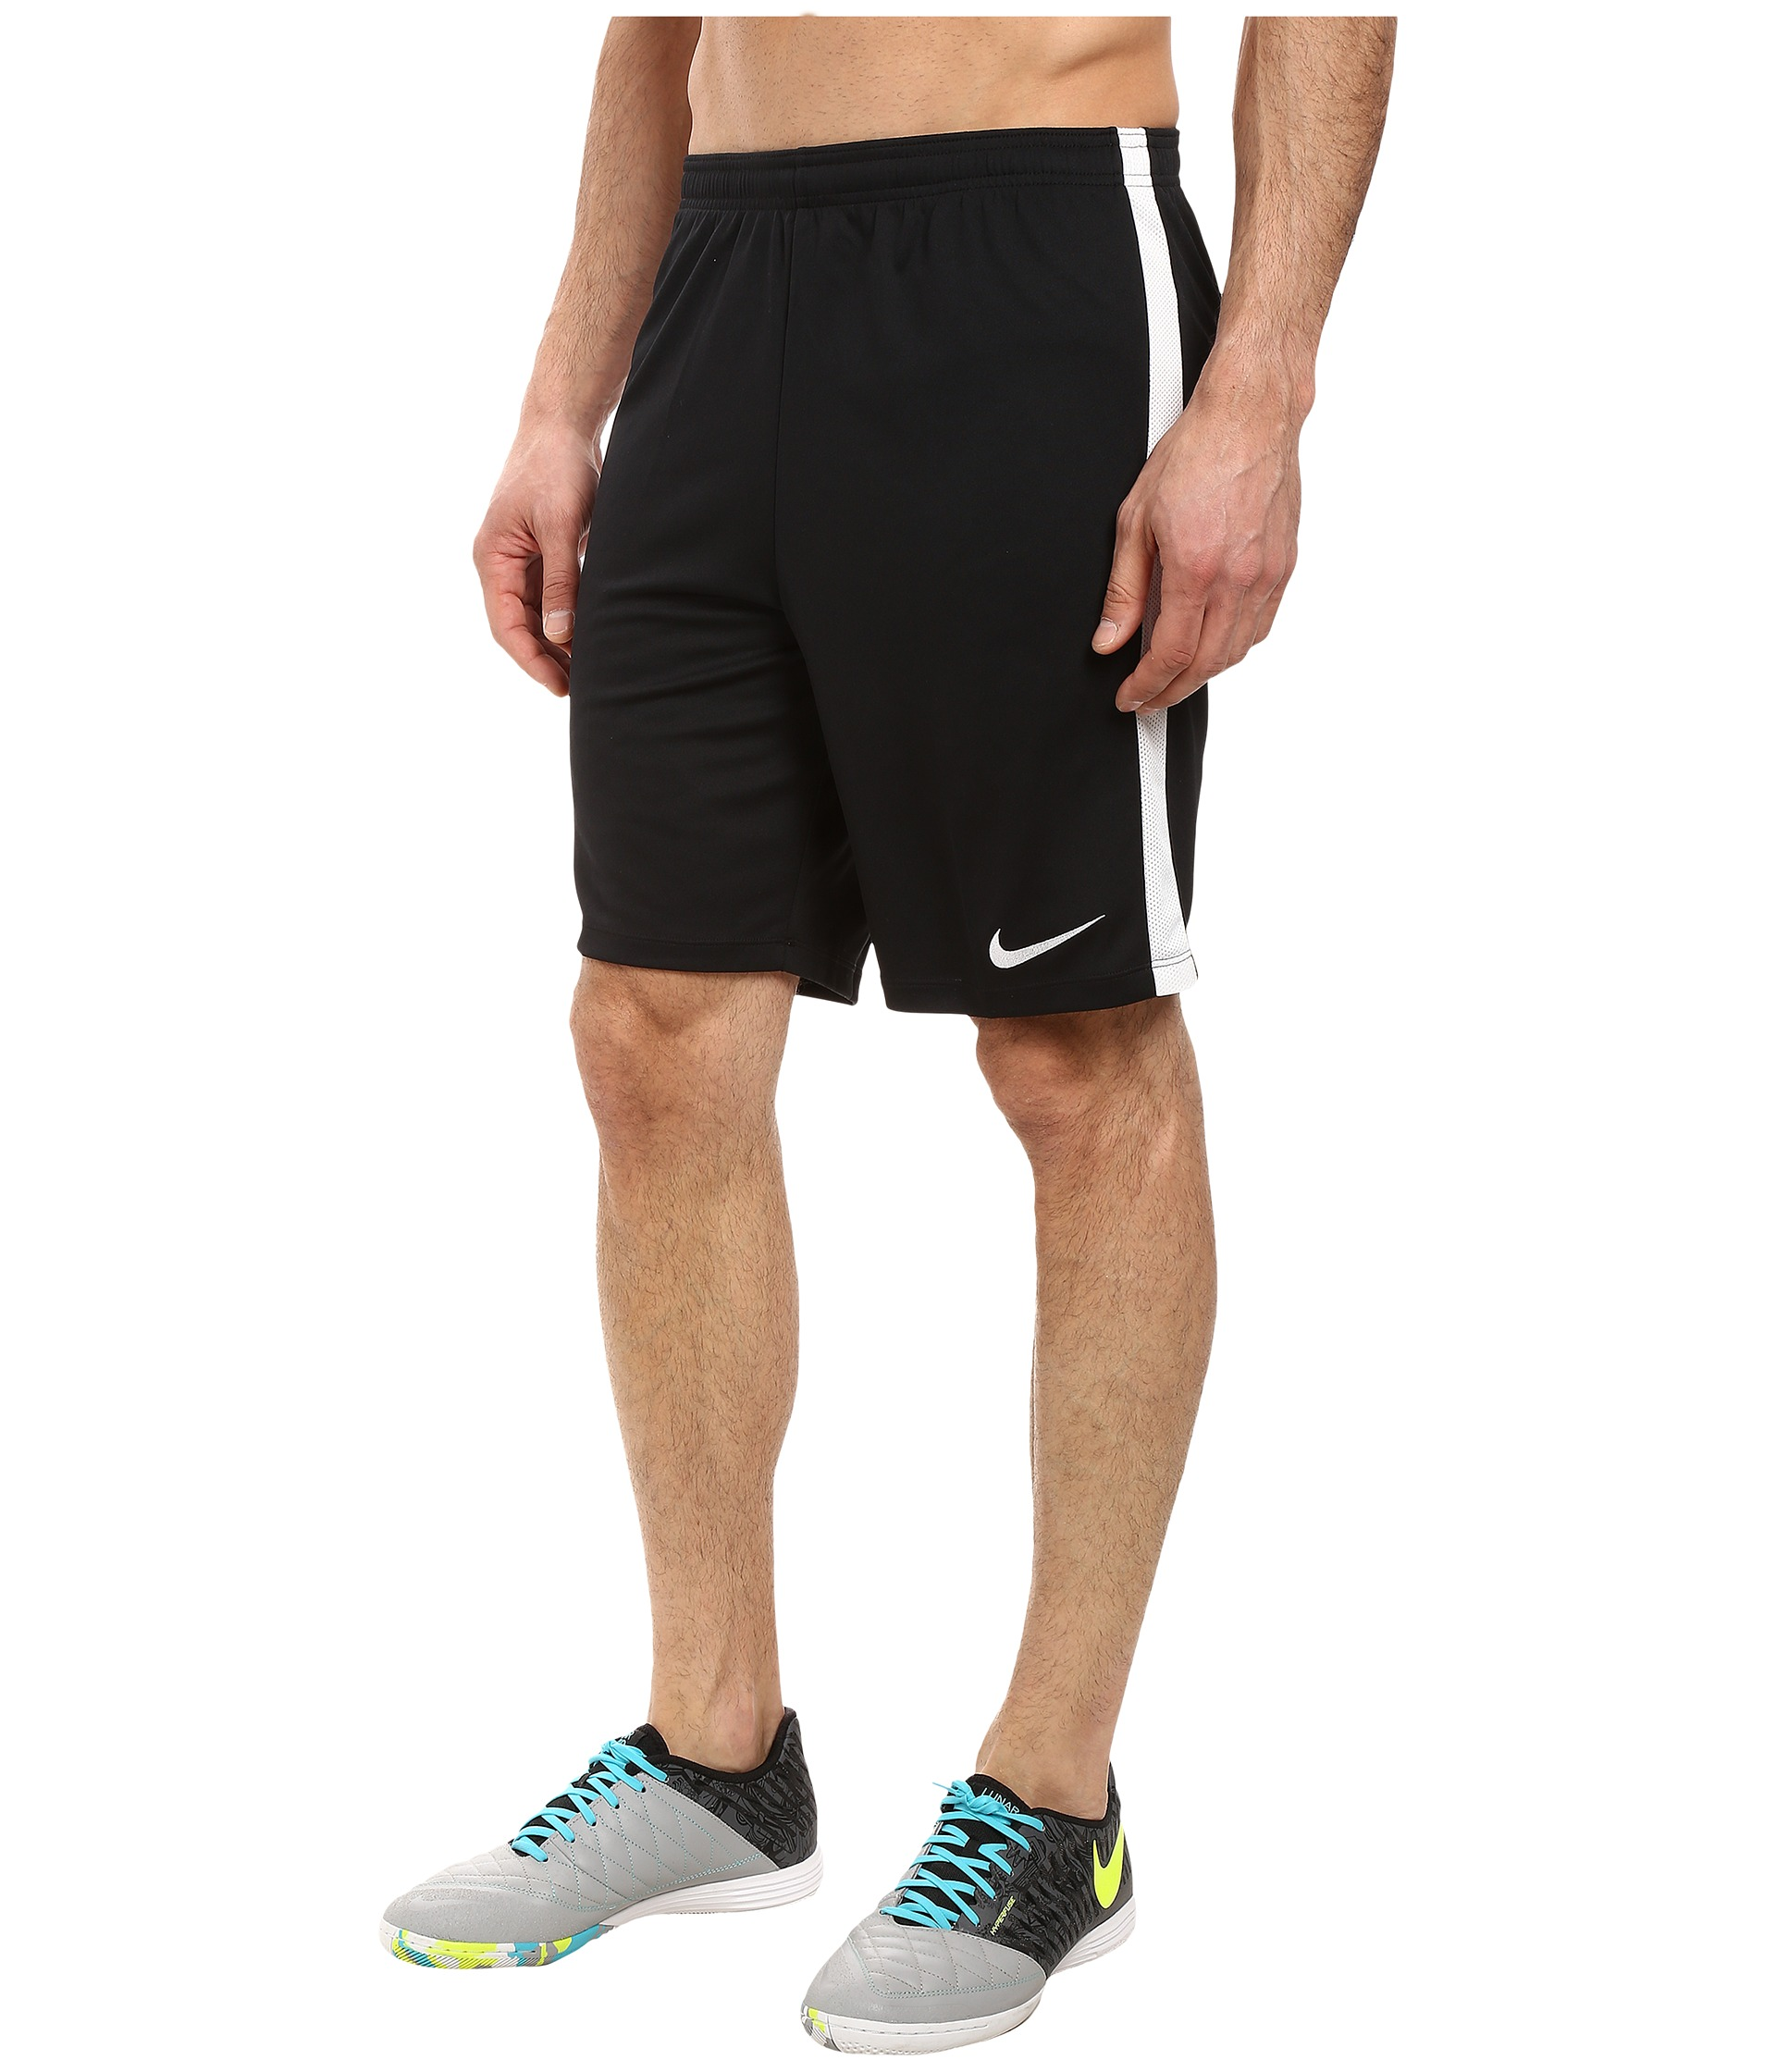 Nike Dry Academy Soccer Short at Zappos.com